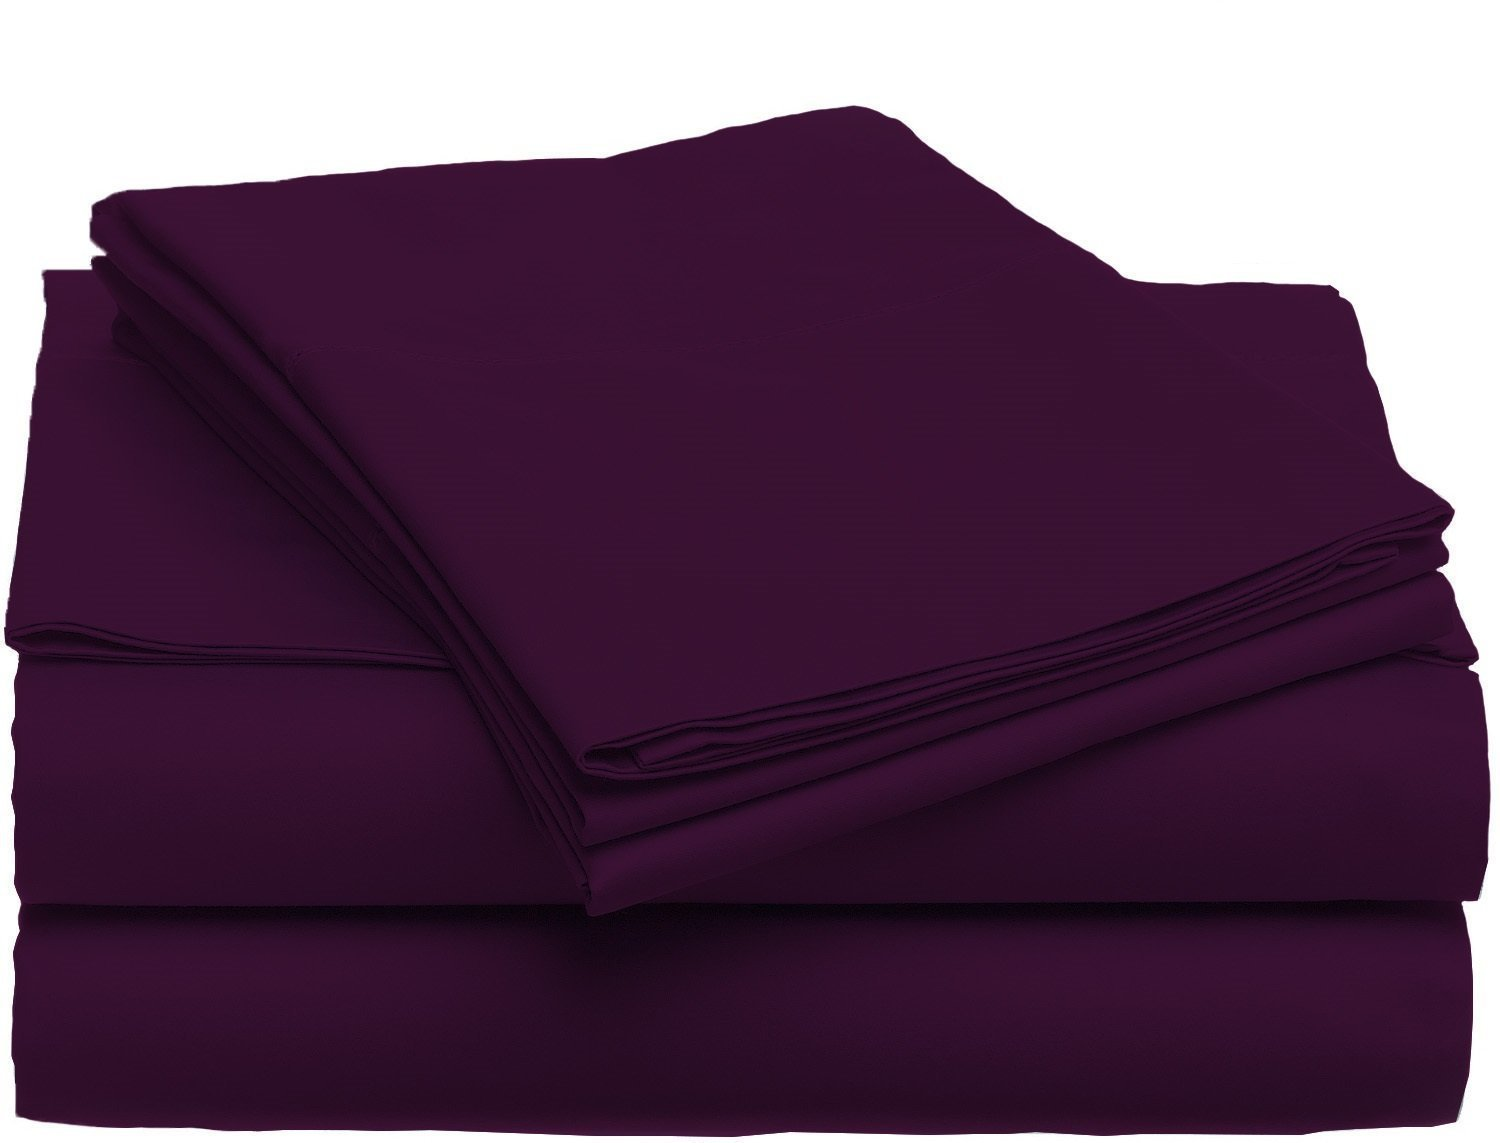 Luxury-Home-Super-Soft-1600-Series-Double-Brushed-6-Pcs-Bed-Sheets-Set thumbnail 20